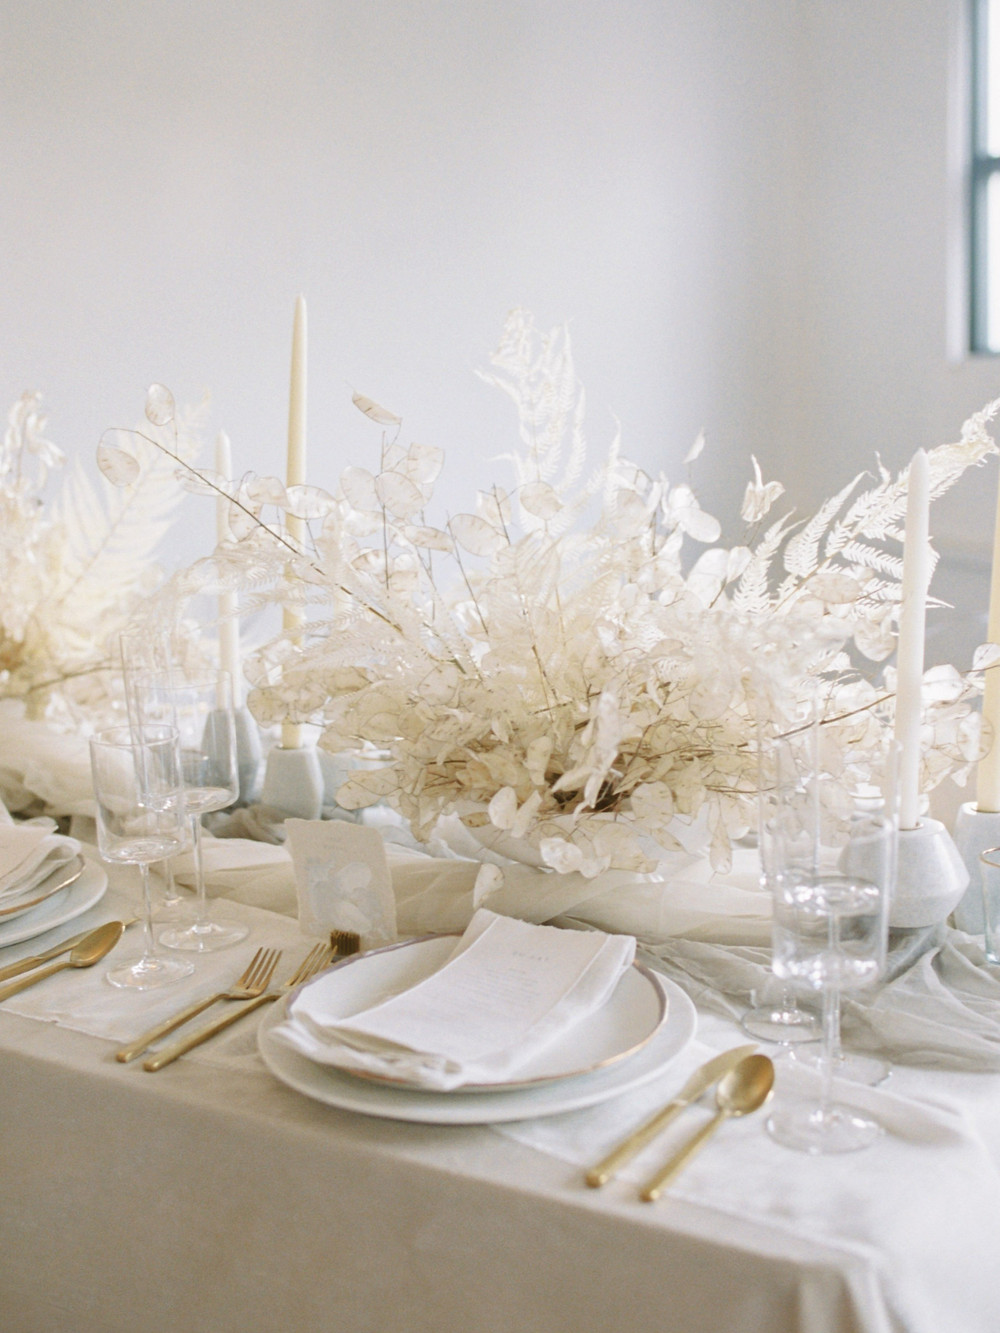 All white centerpiece with lunaria